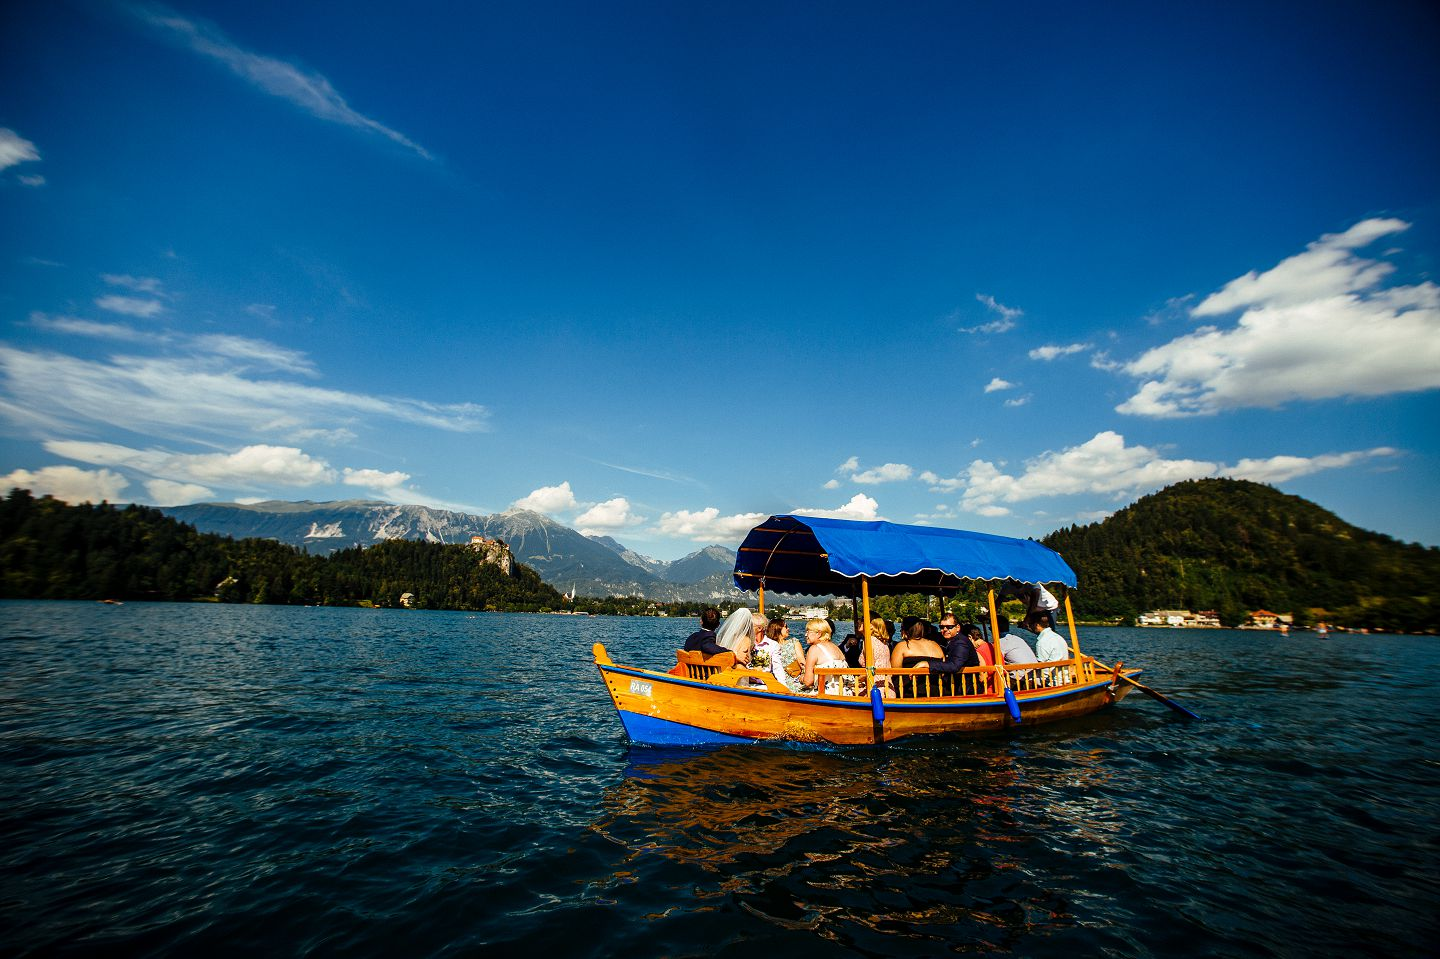 slovenia-lake-bled-wedding-lucy-ian (87)